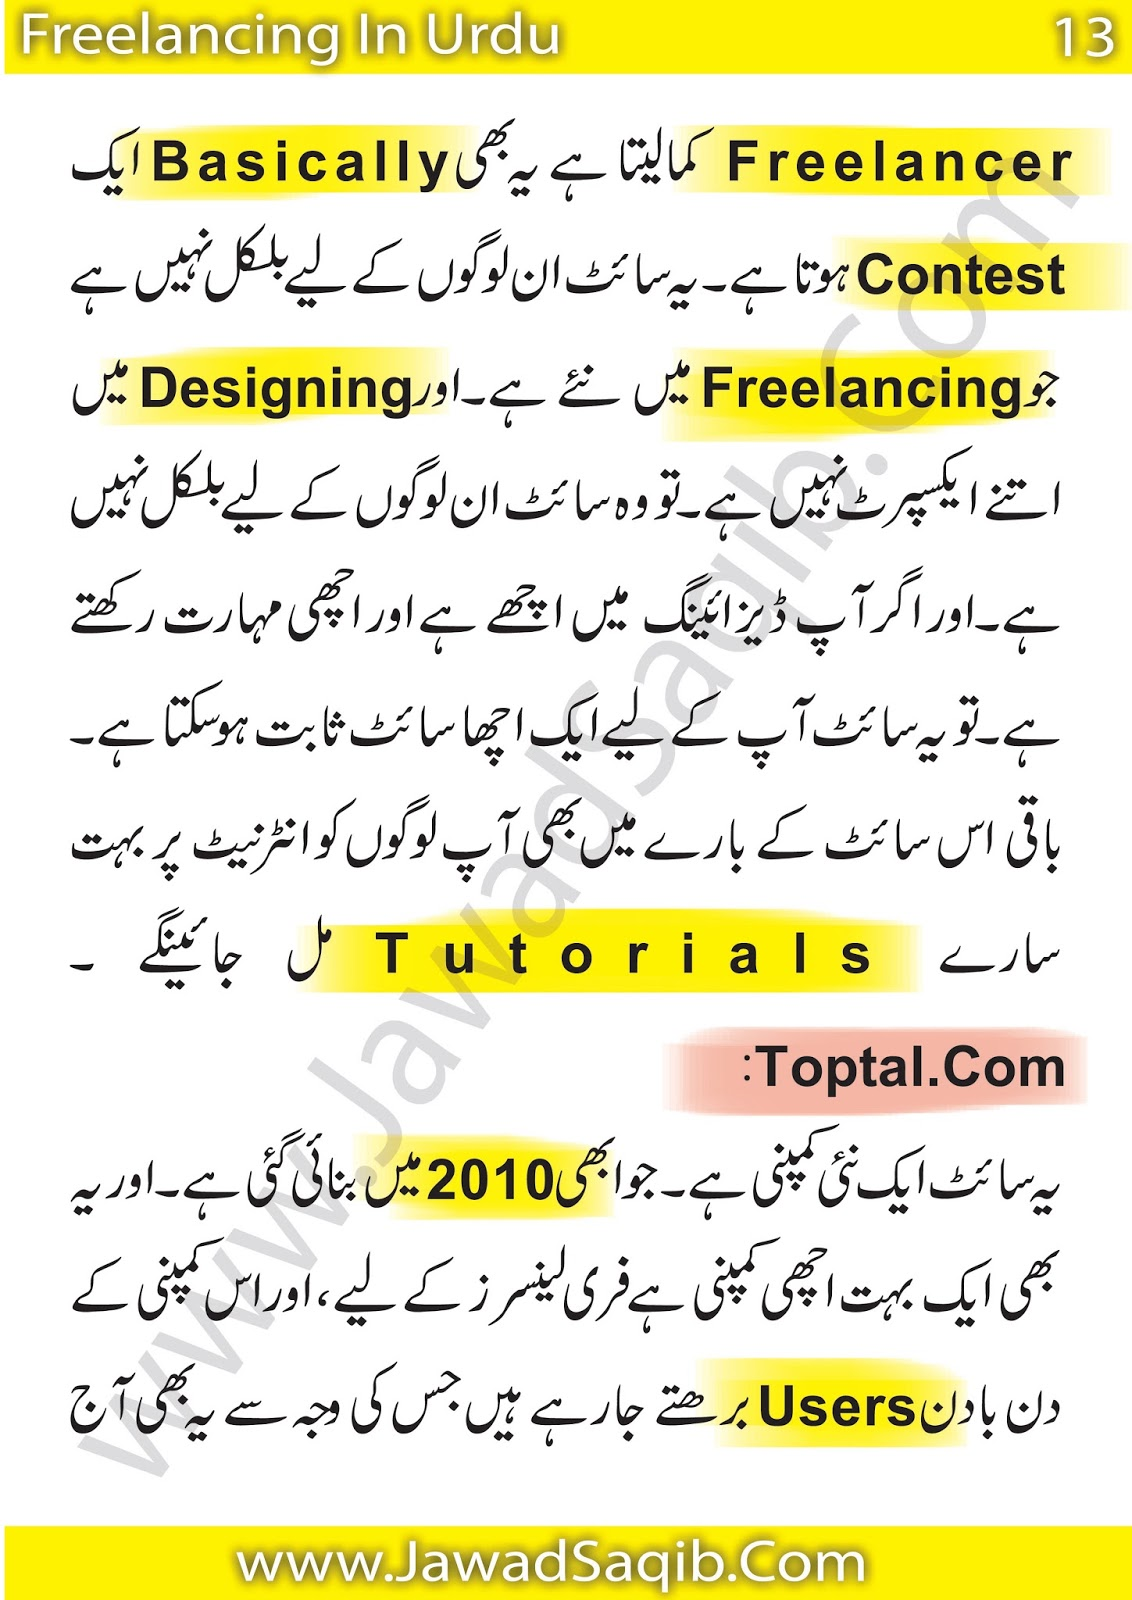 freelancer job in urdu tutorial